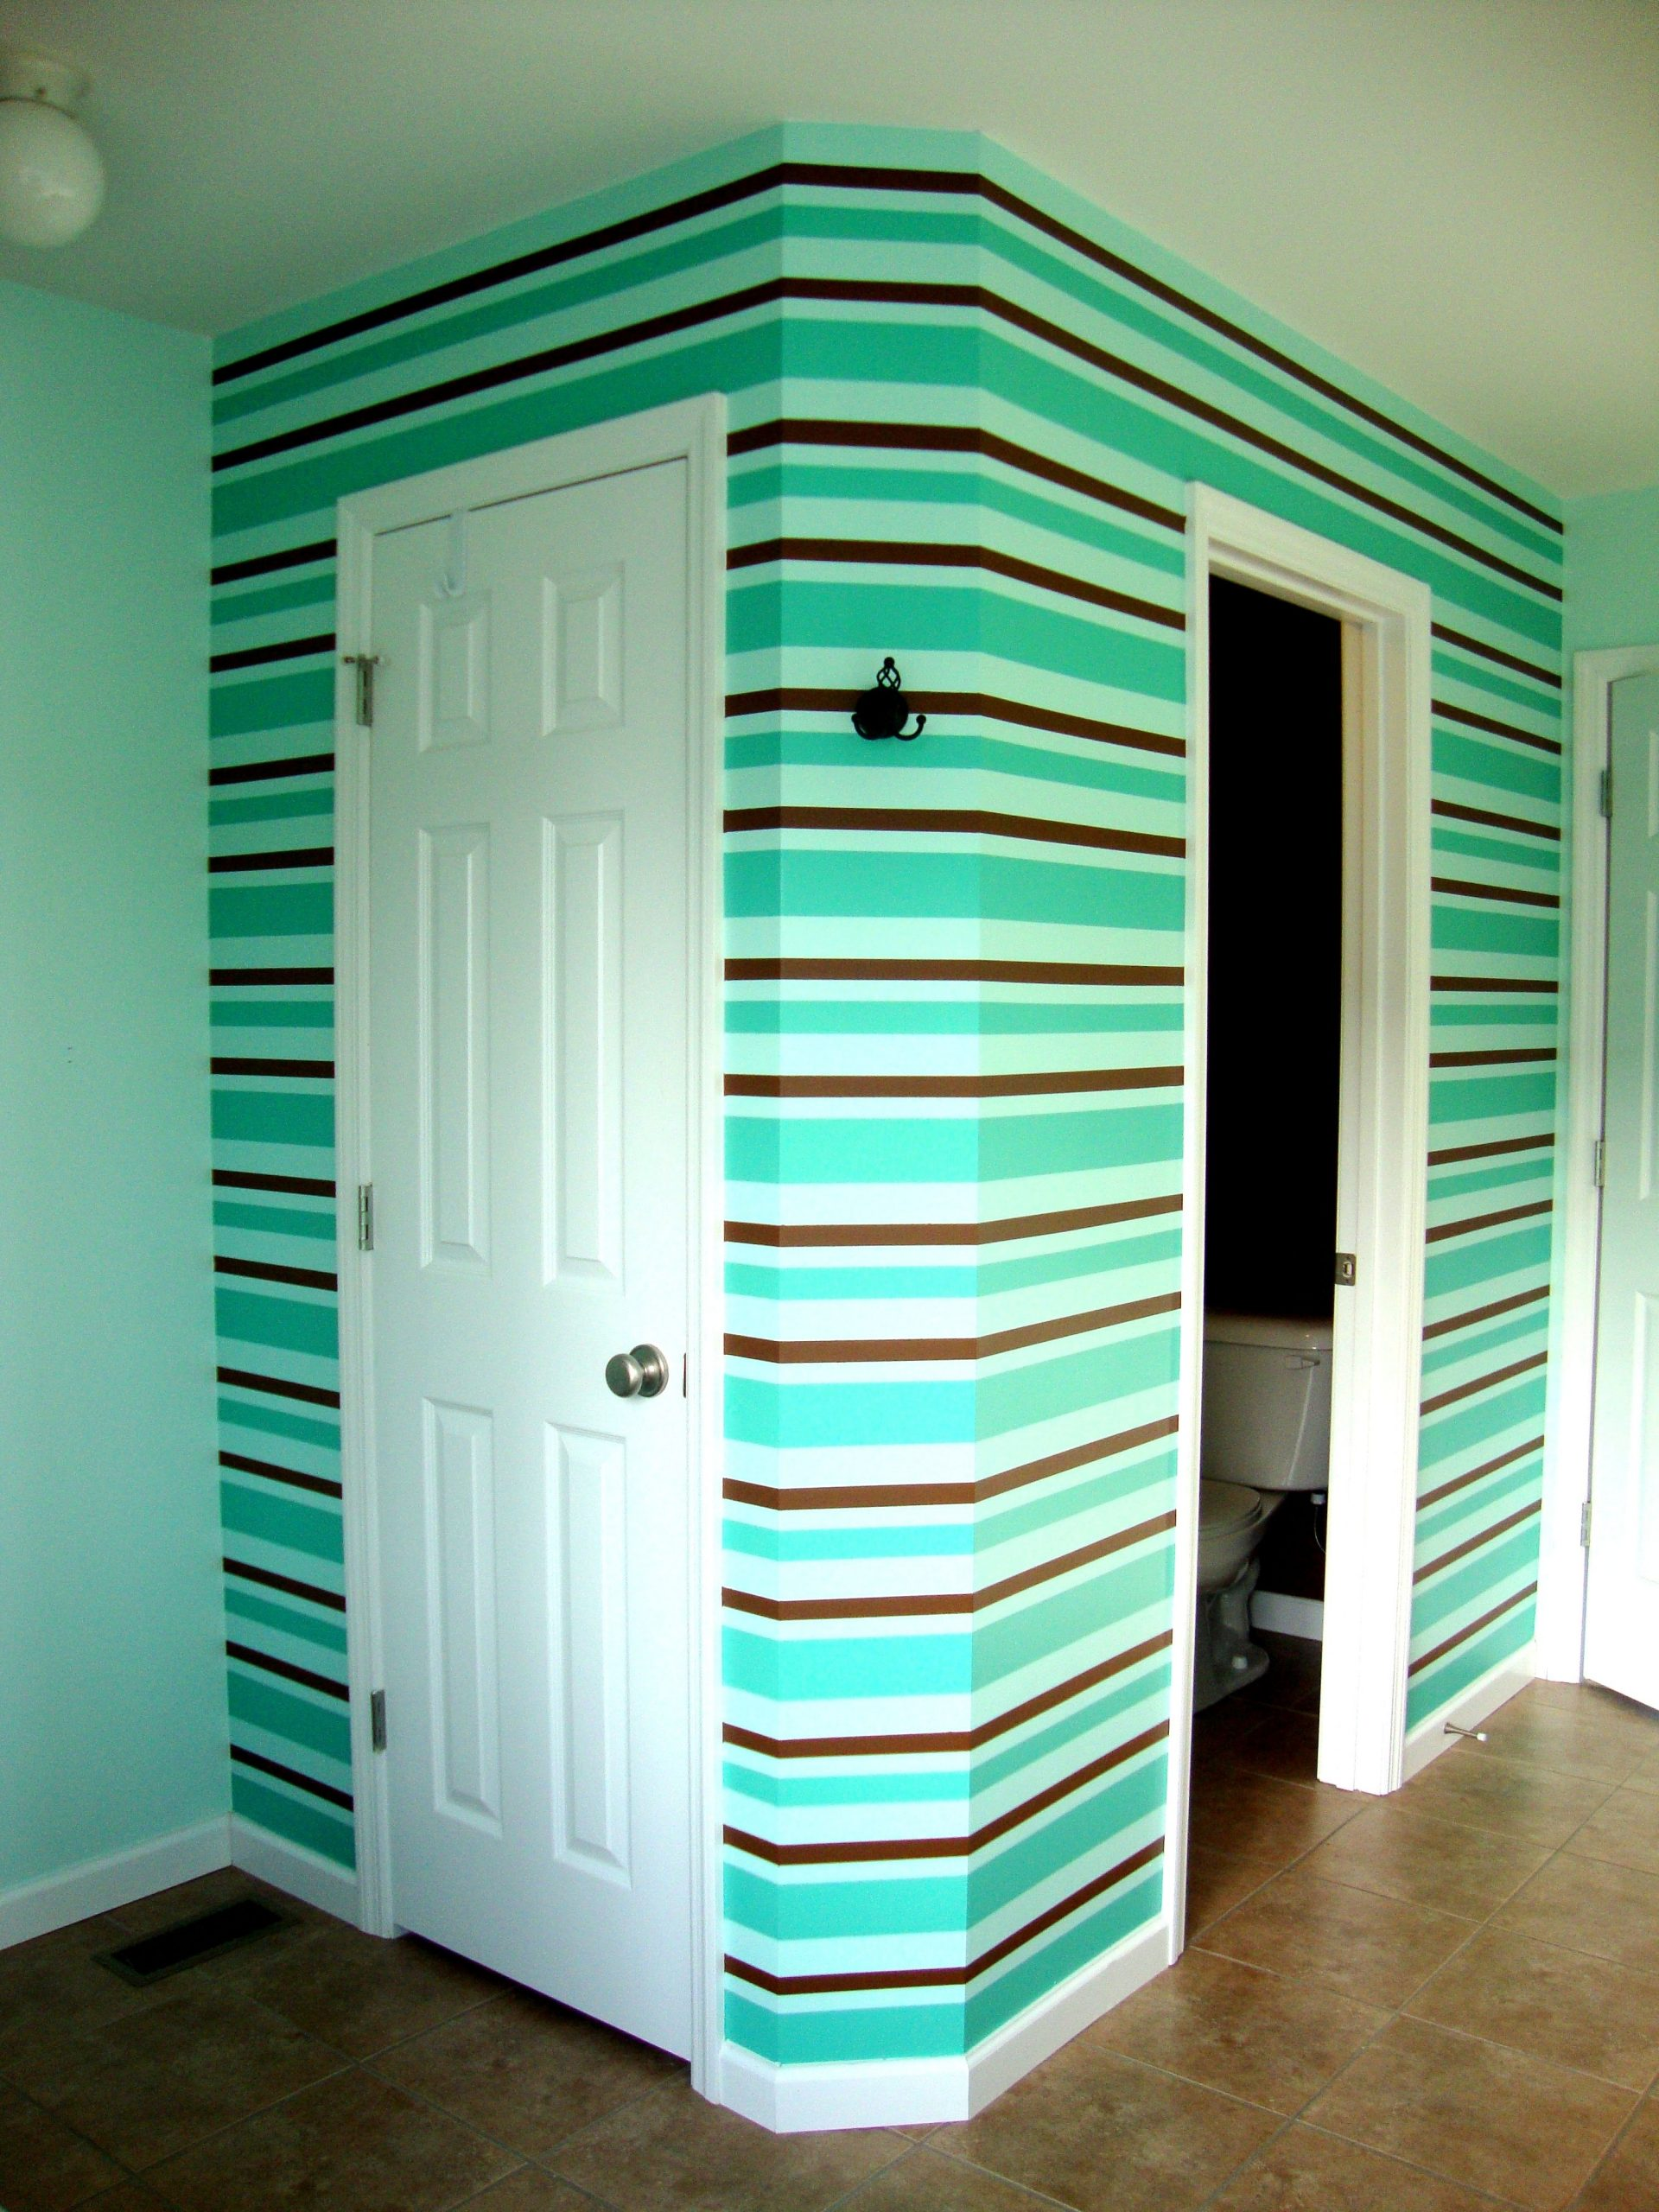 Bathroom Wallpainted Strips With Three Colorstips 30+ Frog Tape Bathroom Inspirations